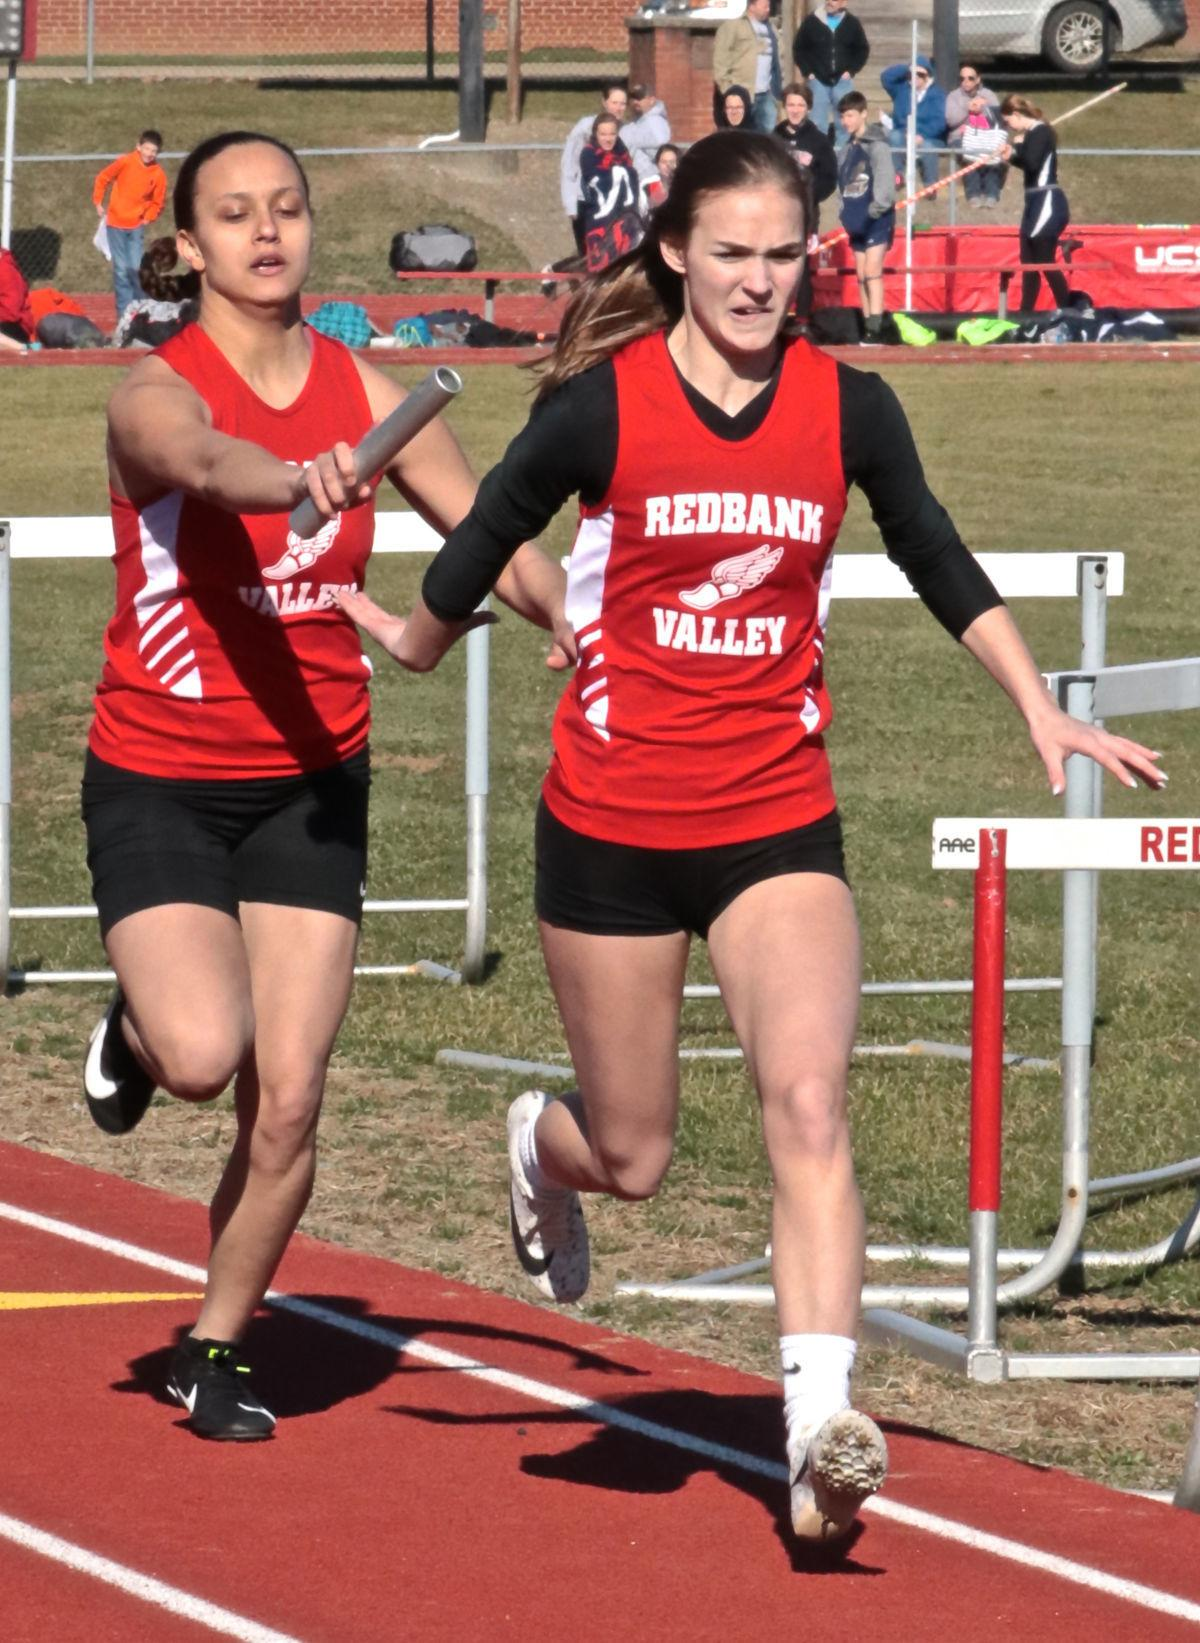 Clark and Clouse 4x100 relay